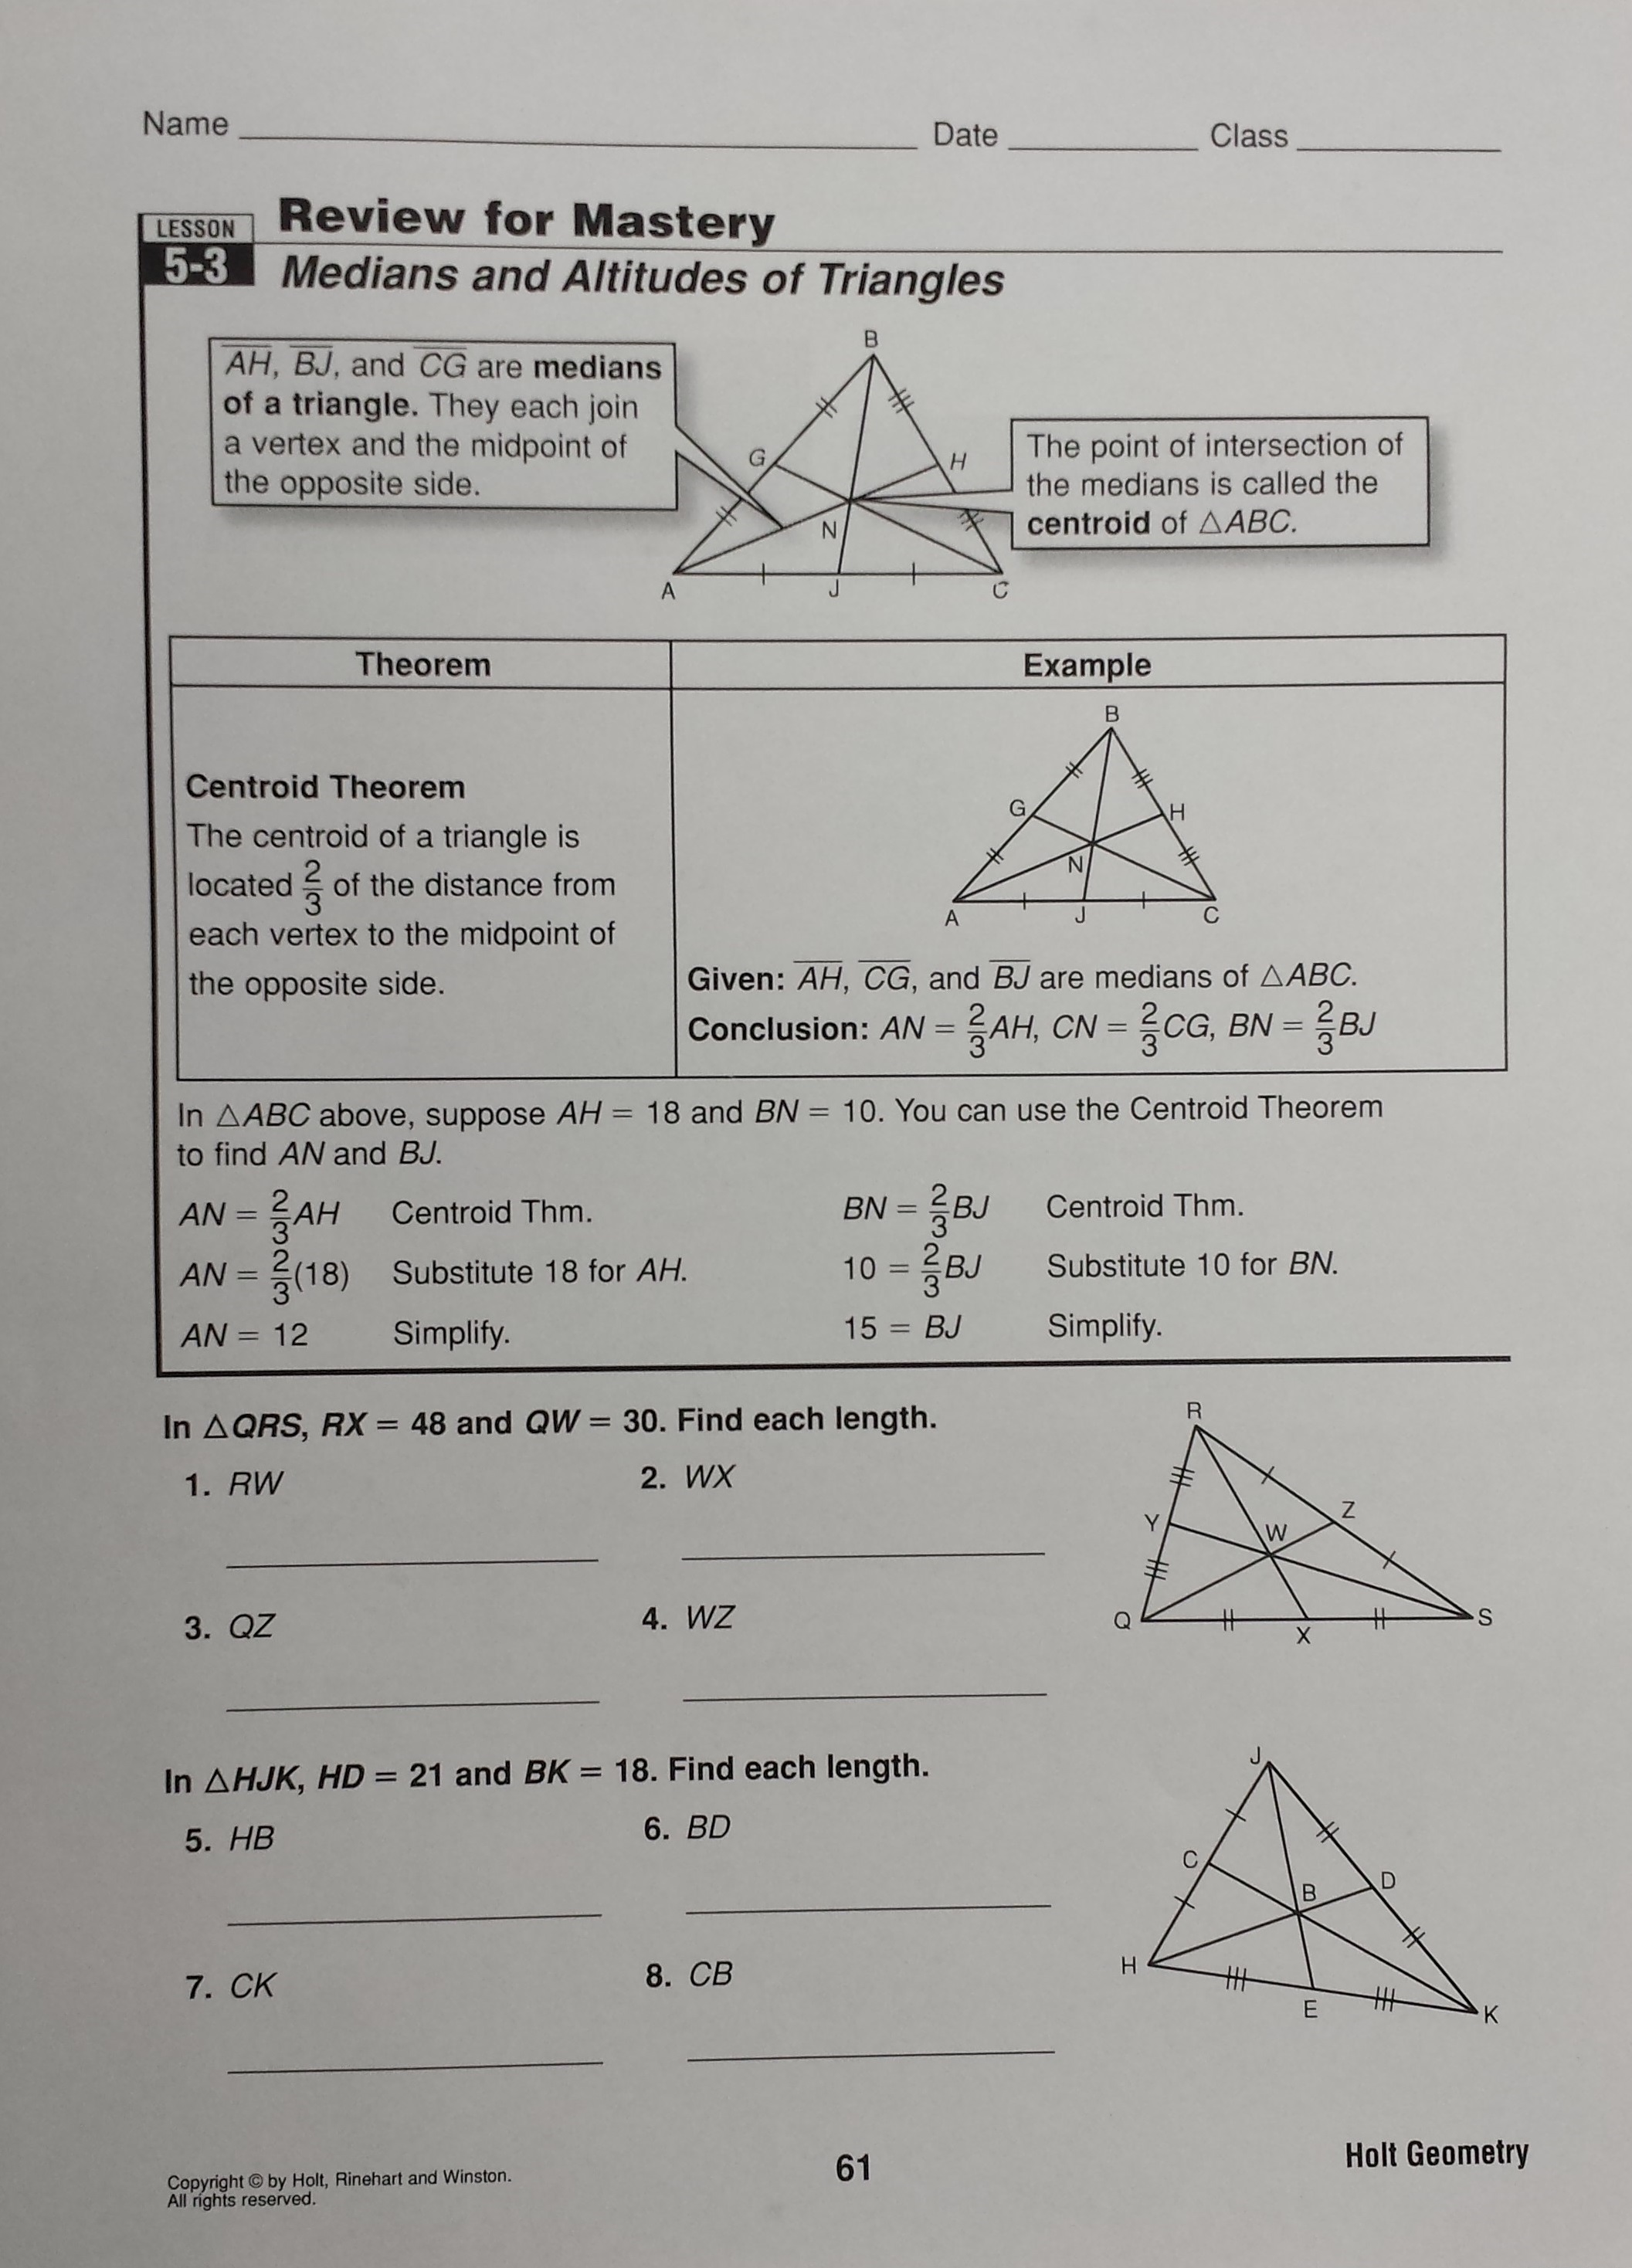 Worksheets Indirect Proof Worksheet With Answers mrs garnet at pvphs 5 3 review for mastery worksheet 1 8 friday november 21